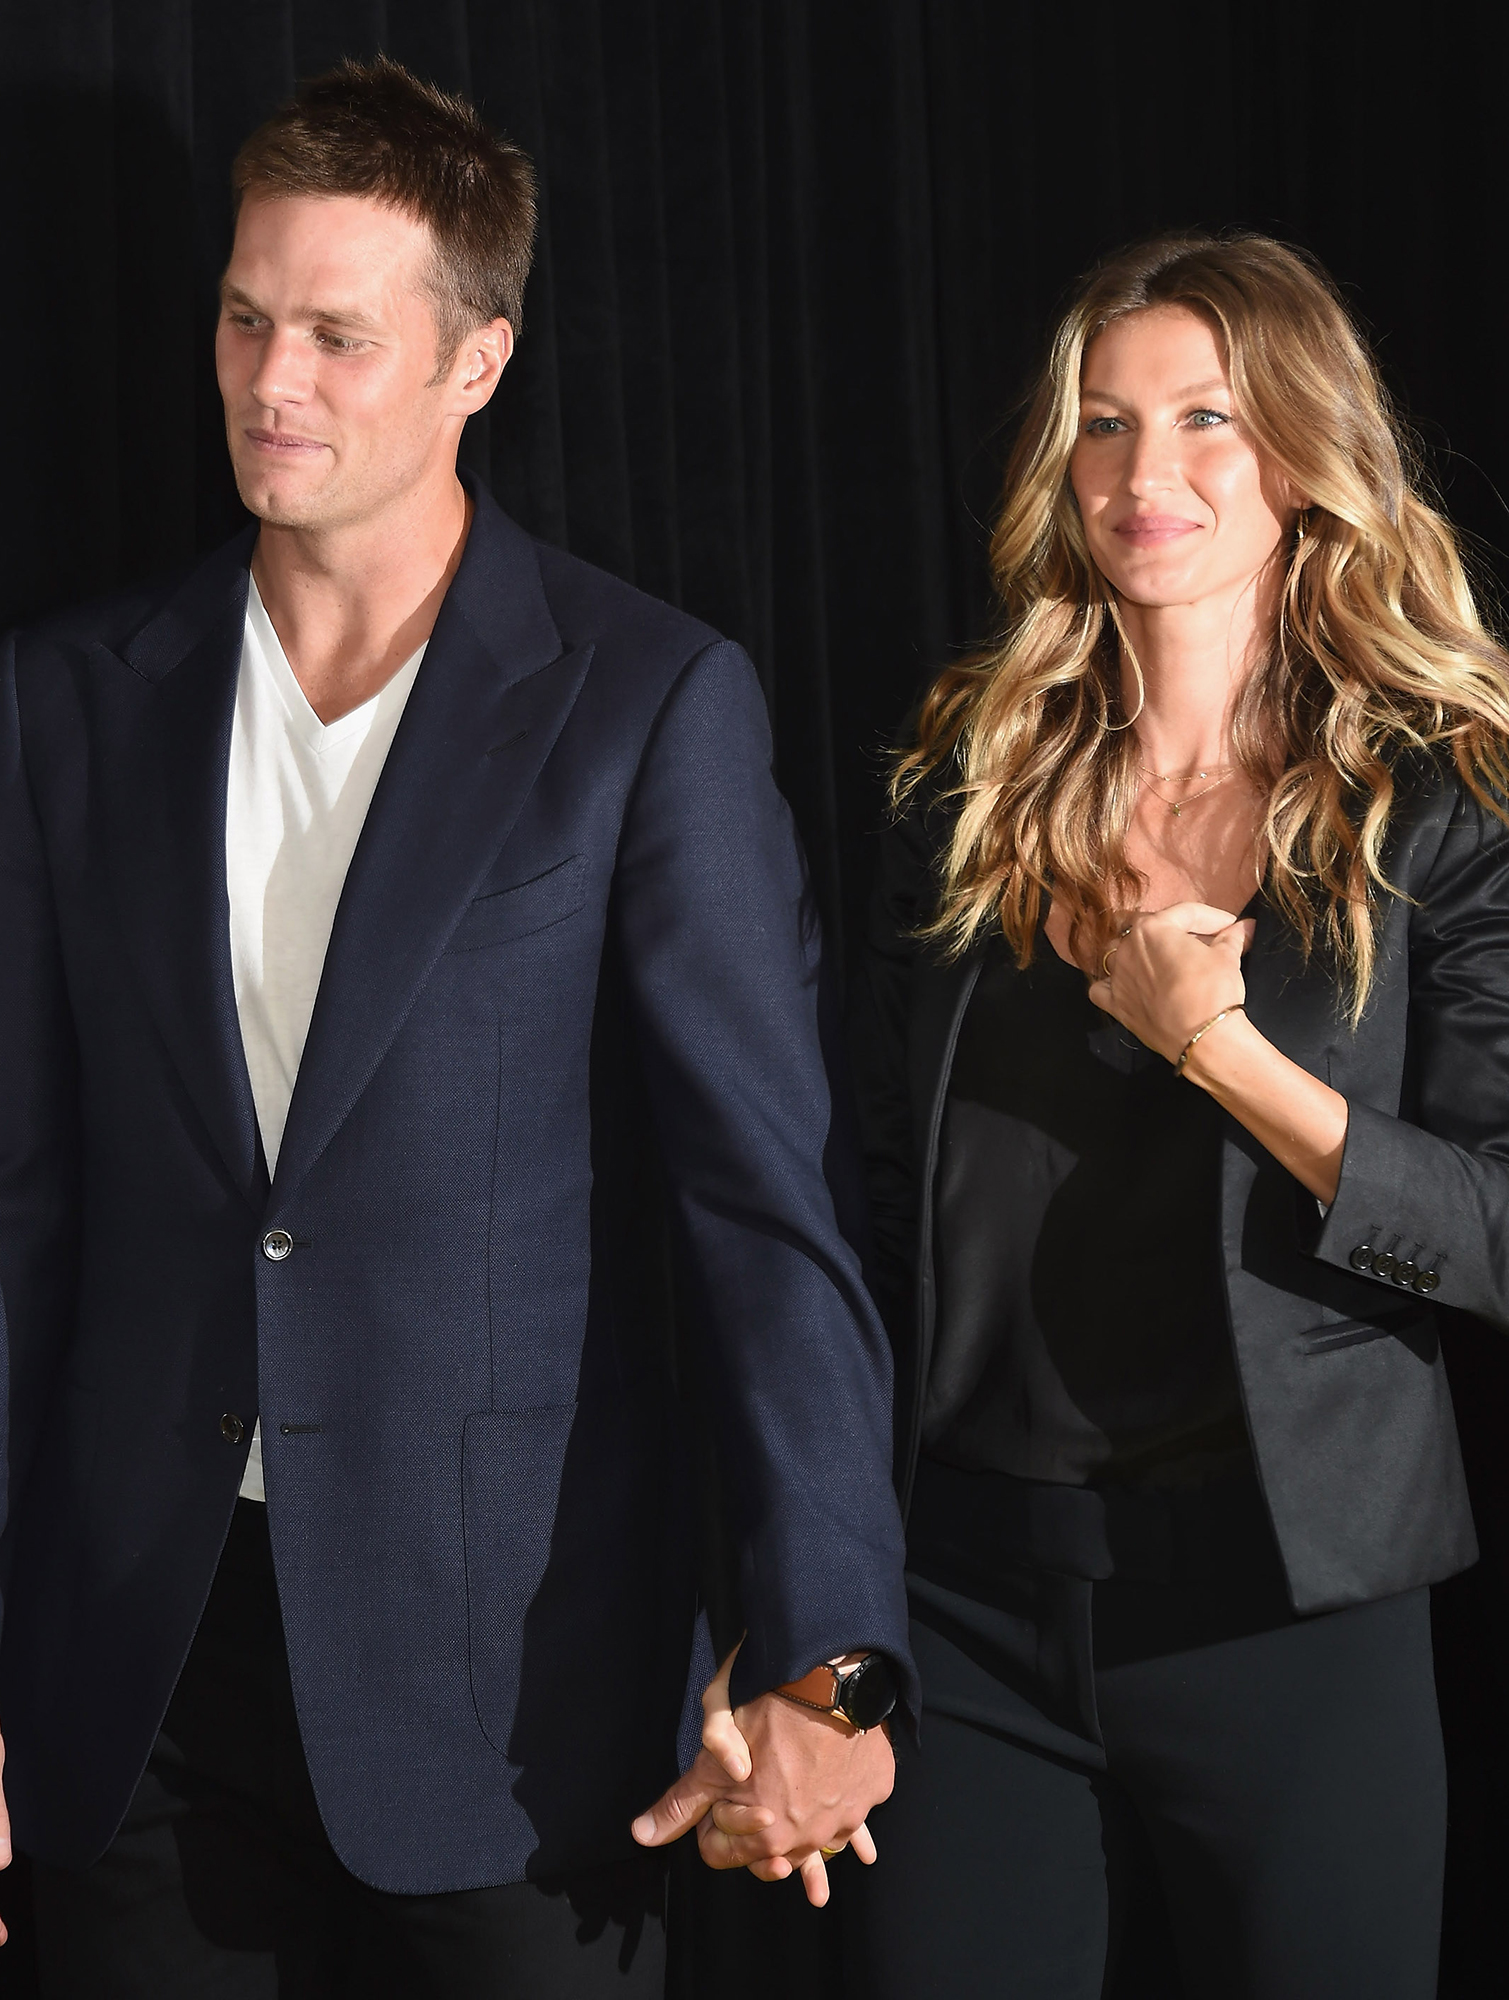 """Tom Brady and Gisele Bundchen: A Timeline of Their Relationship - A source told Us in September 2015 that things were """"very tense"""" between Brady and Bündchen after deflategate, an NFL controversy revolving around accusations that Brady ordered the deflating of footballs in the AFC Championship Game in the 2014-2015 NFL playoffs. Brady addressed the marriage troubles later that month."""